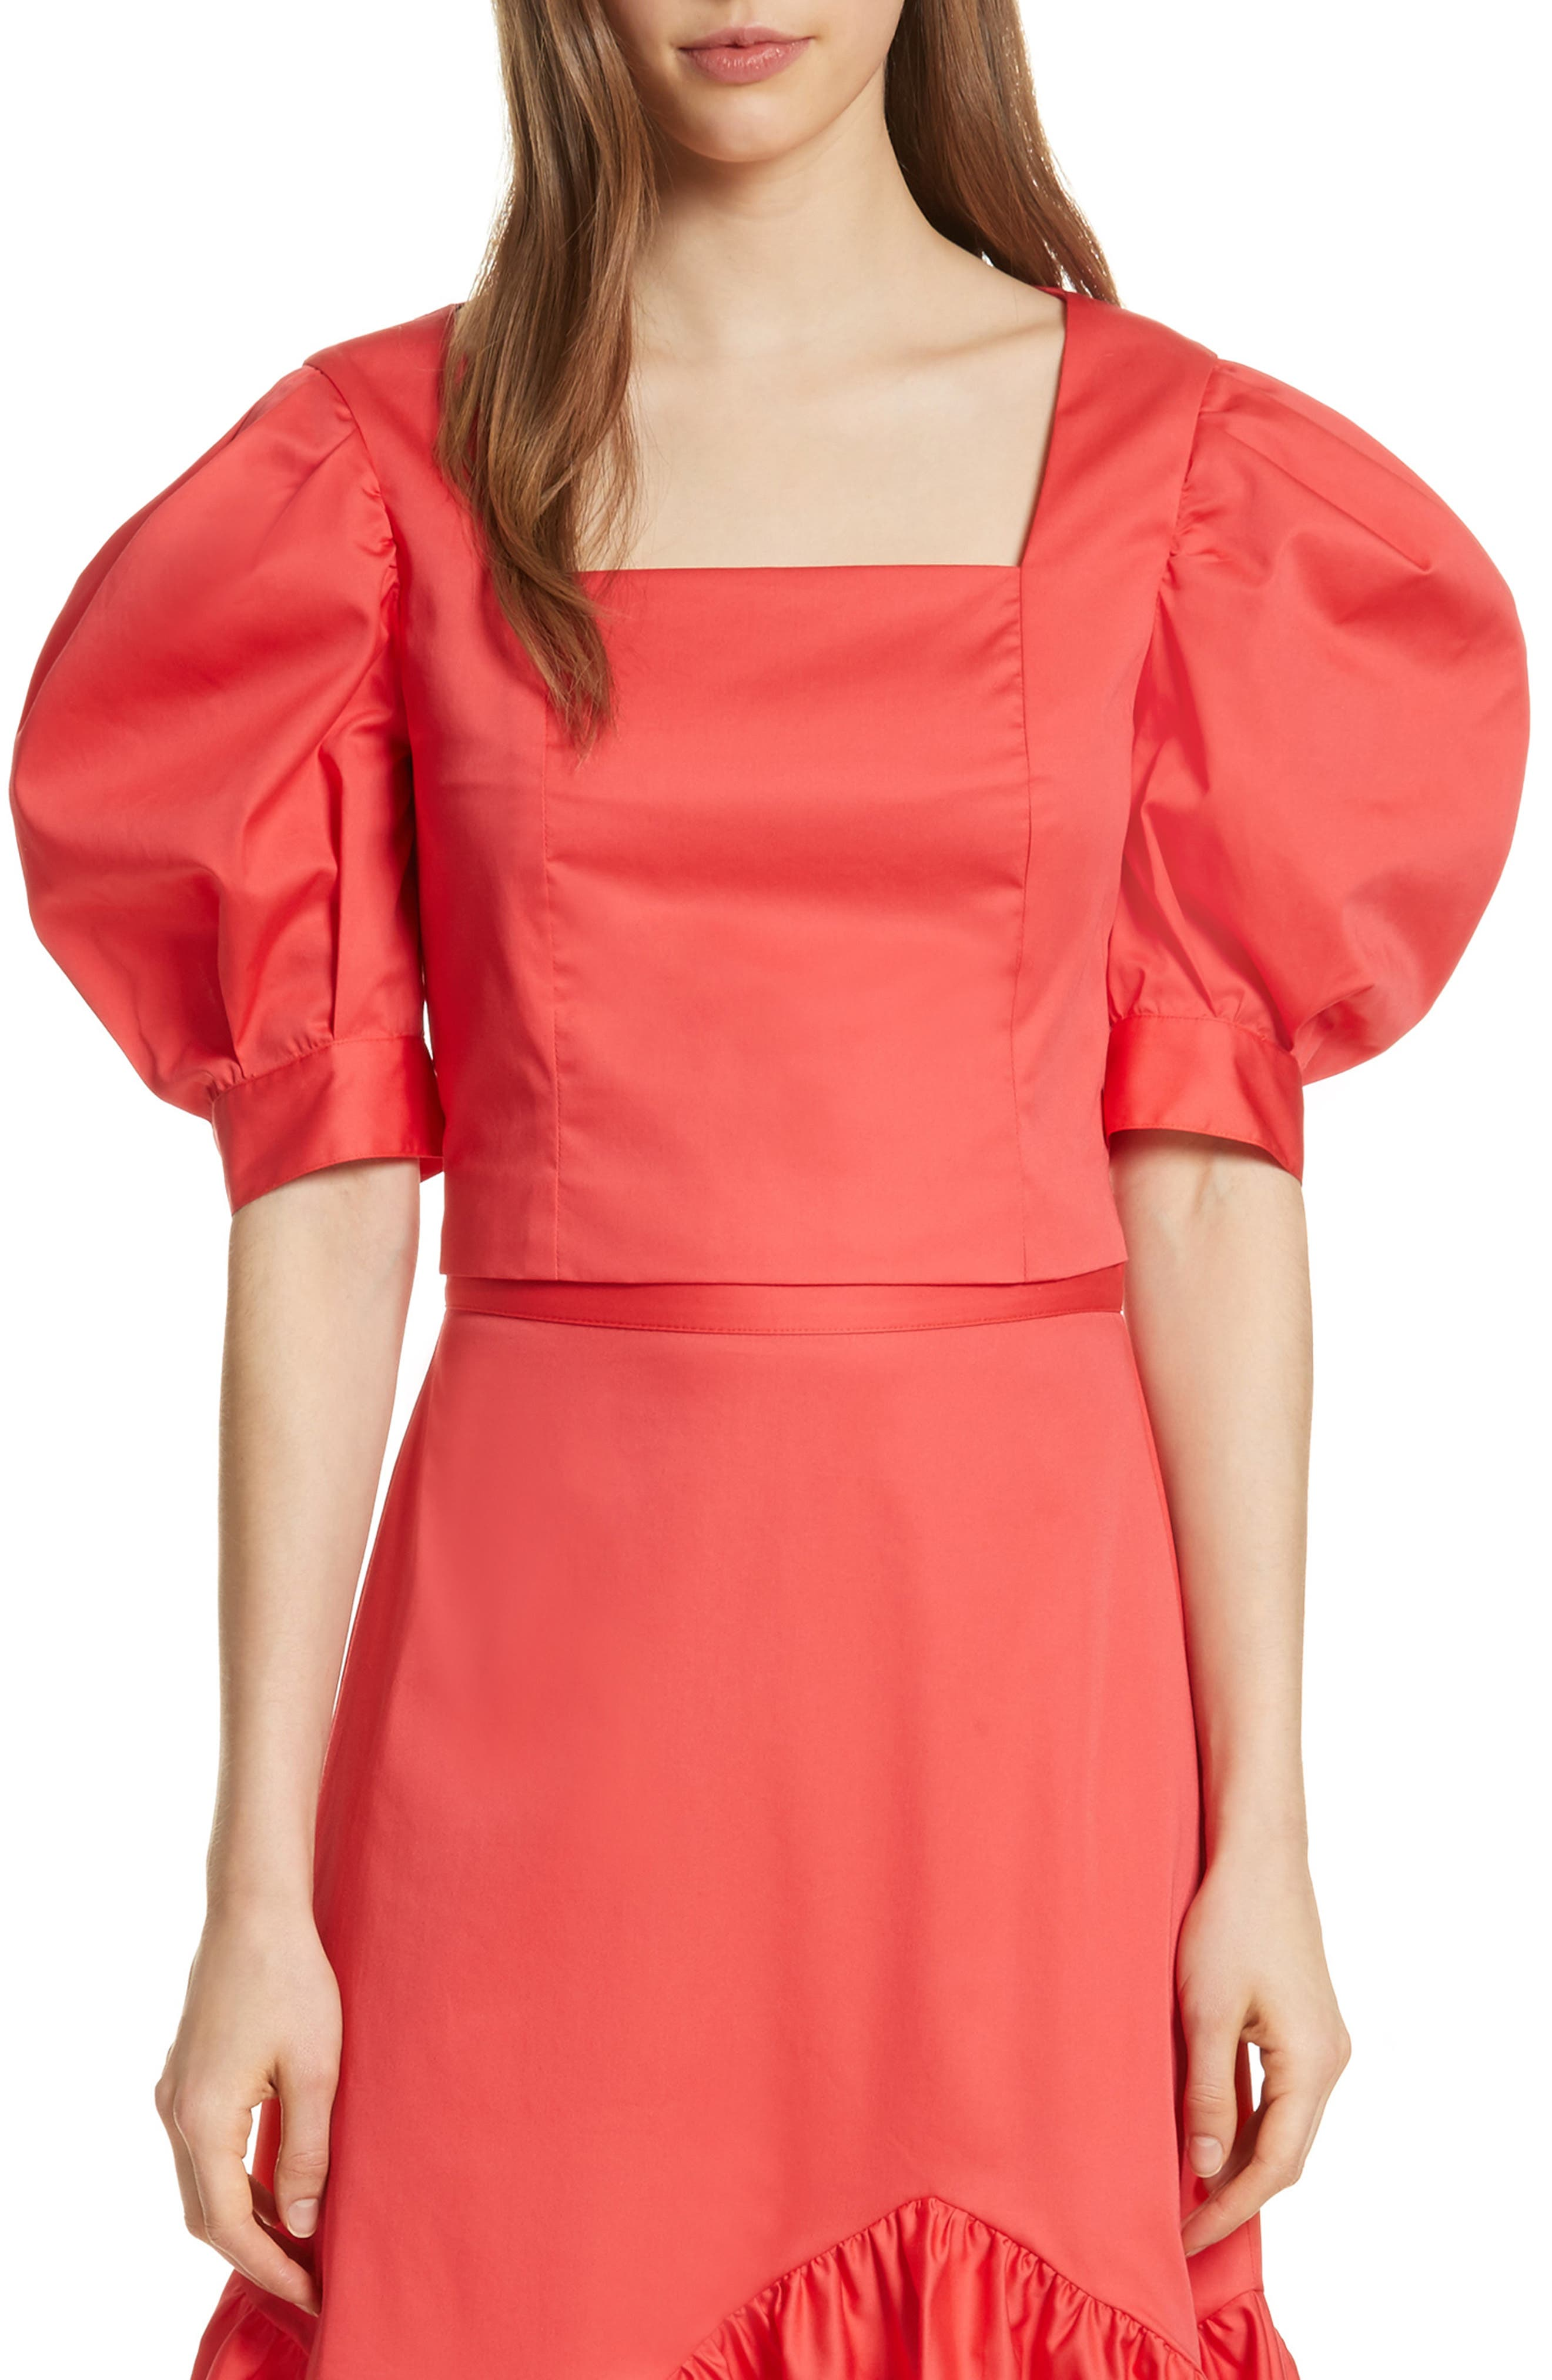 Prose & Poetry Claudia Puff Sleeve Top,                             Main thumbnail 1, color,                             Watermelon